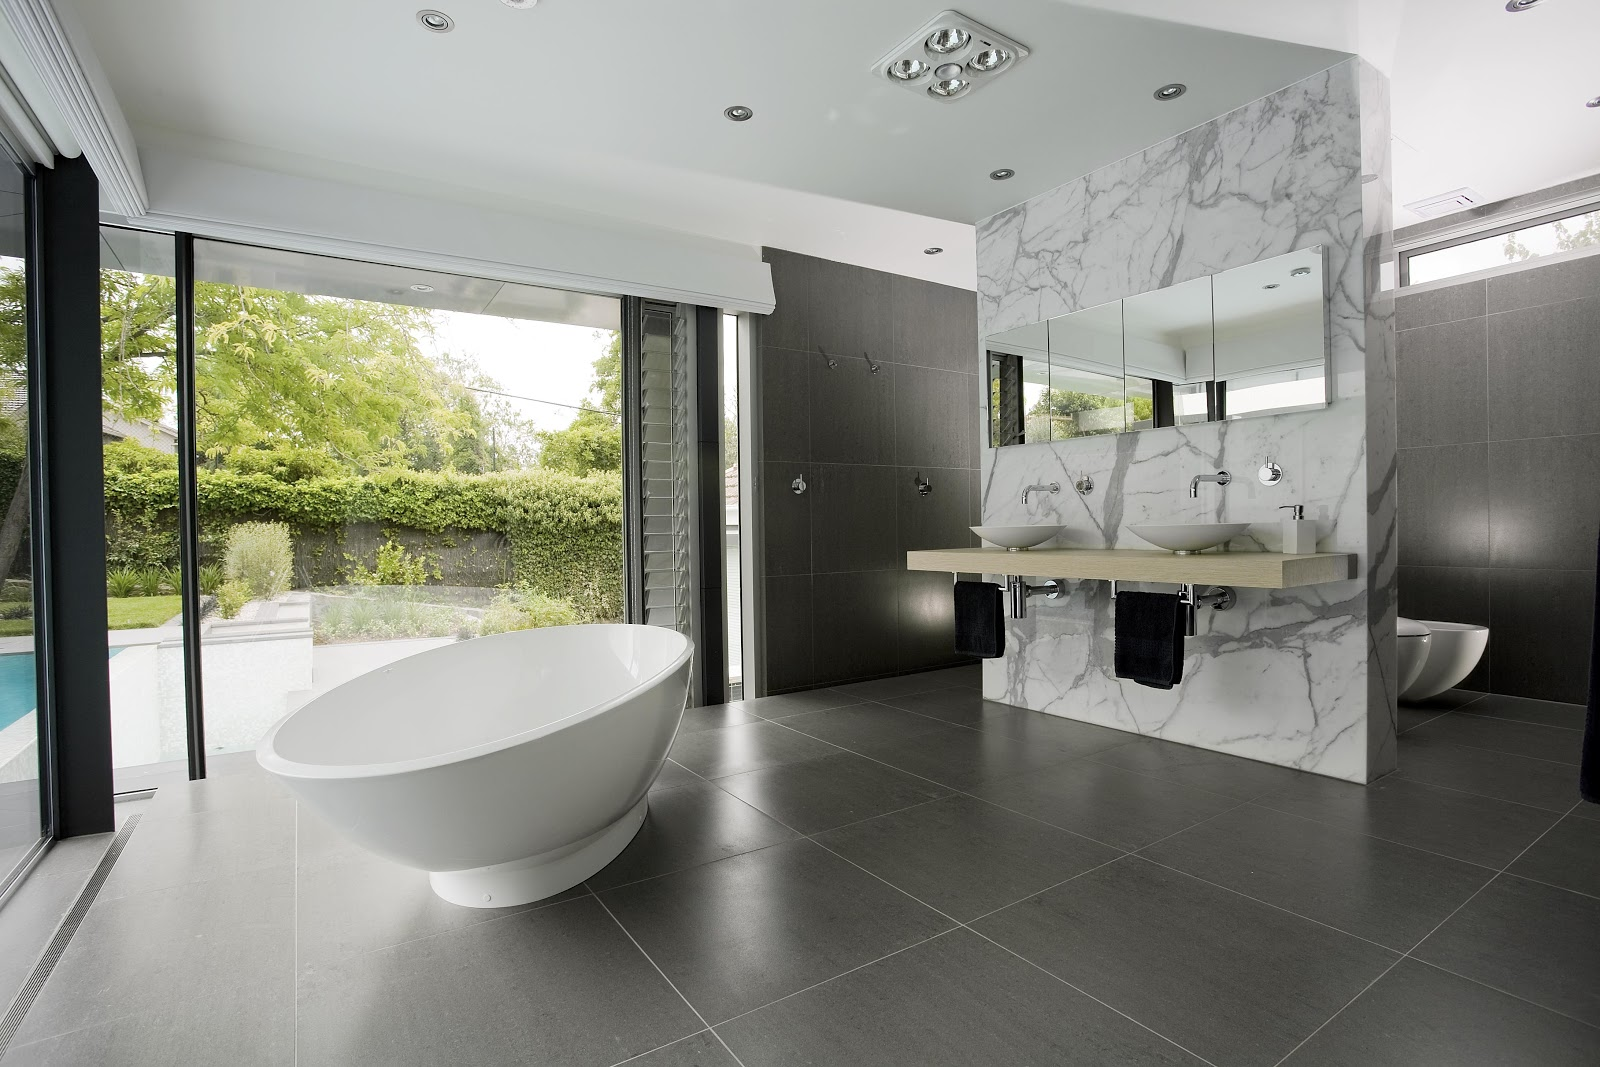 Minosa: Modern Bathrooms - The search for something different